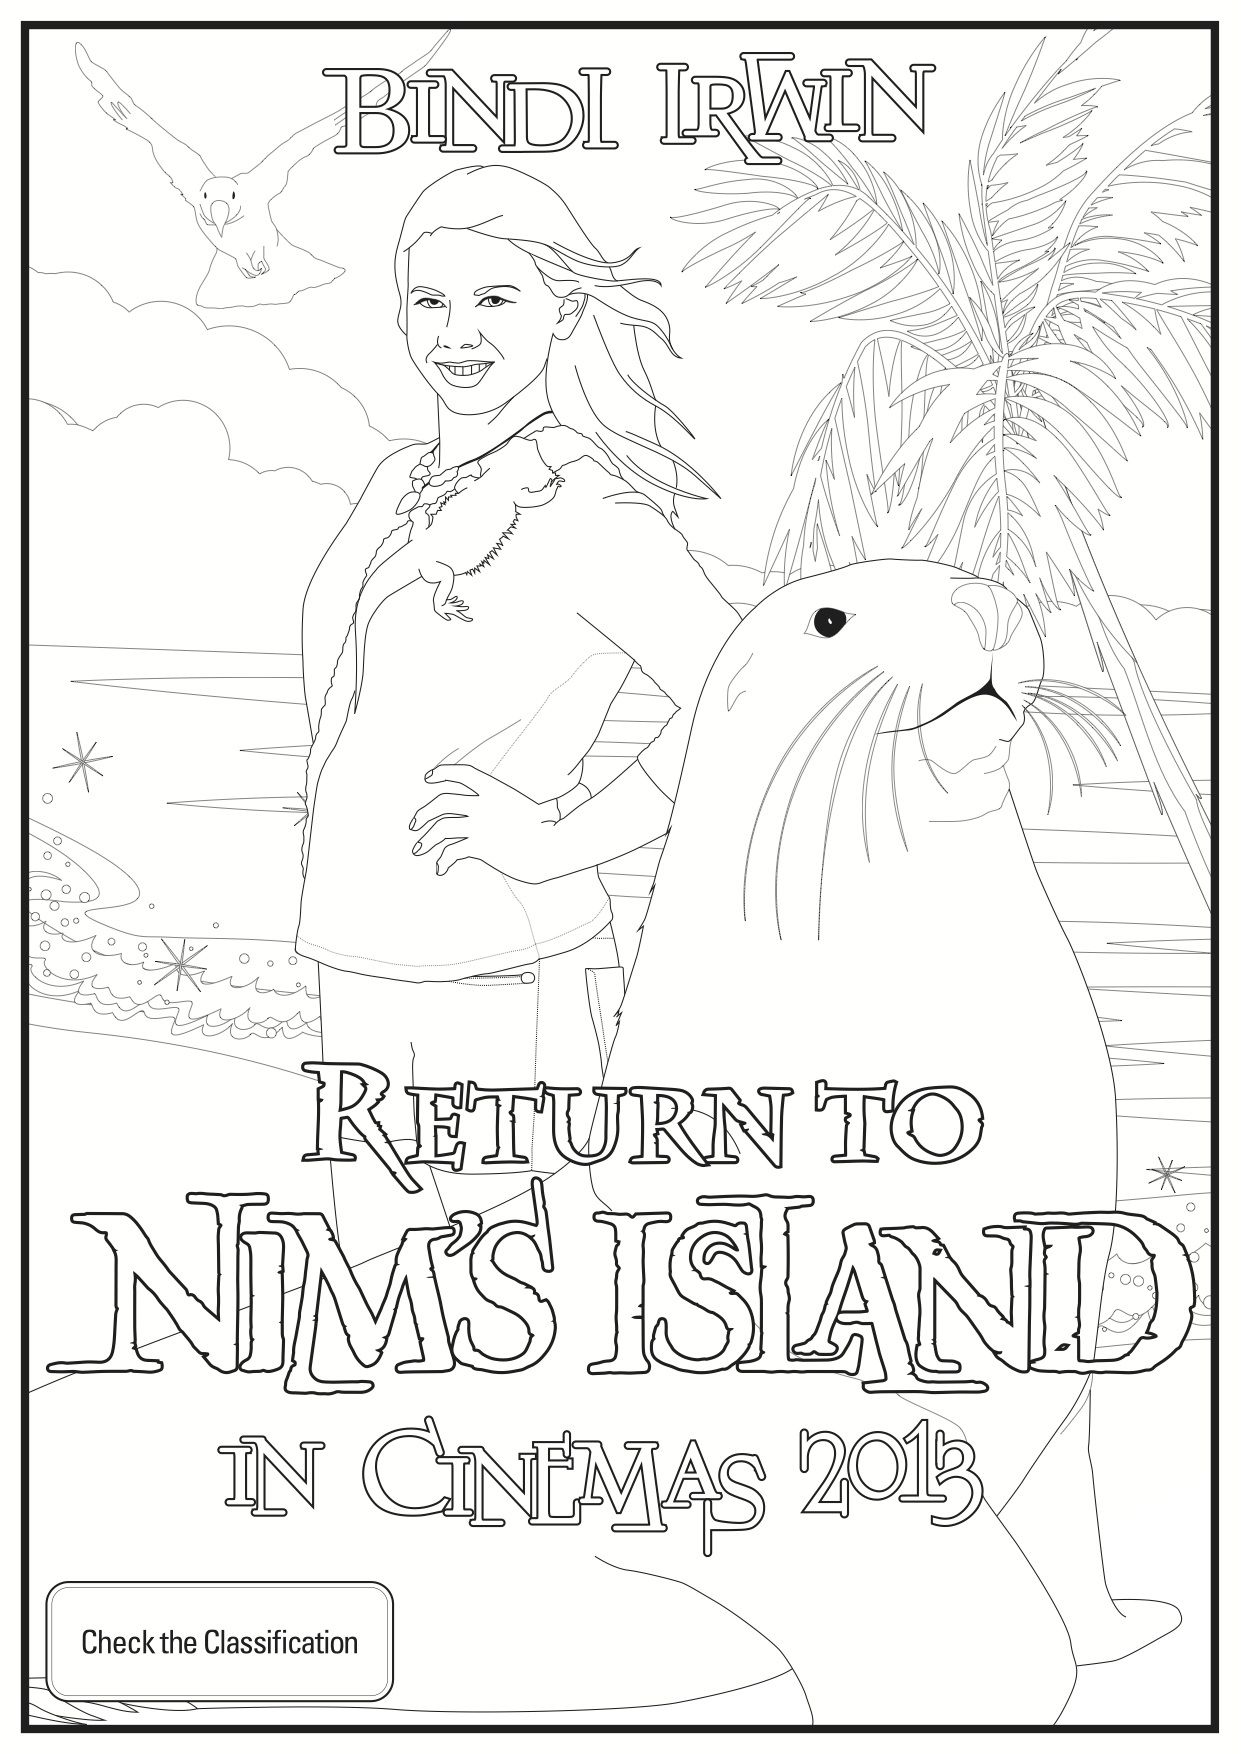 nims island coloring pages - photo#4